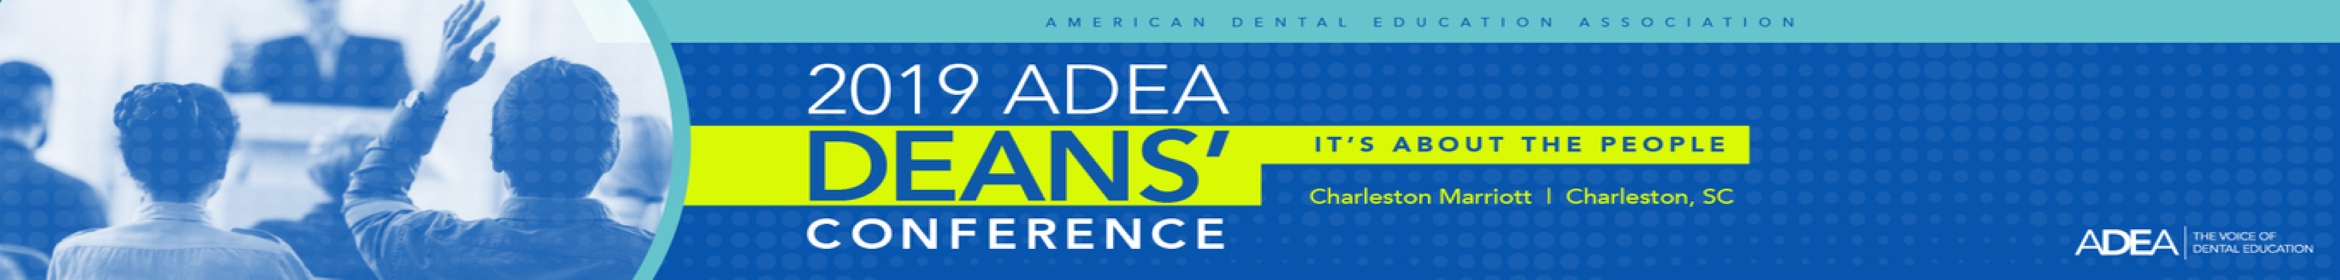 2019 ADEA Deans' Conference Main banner